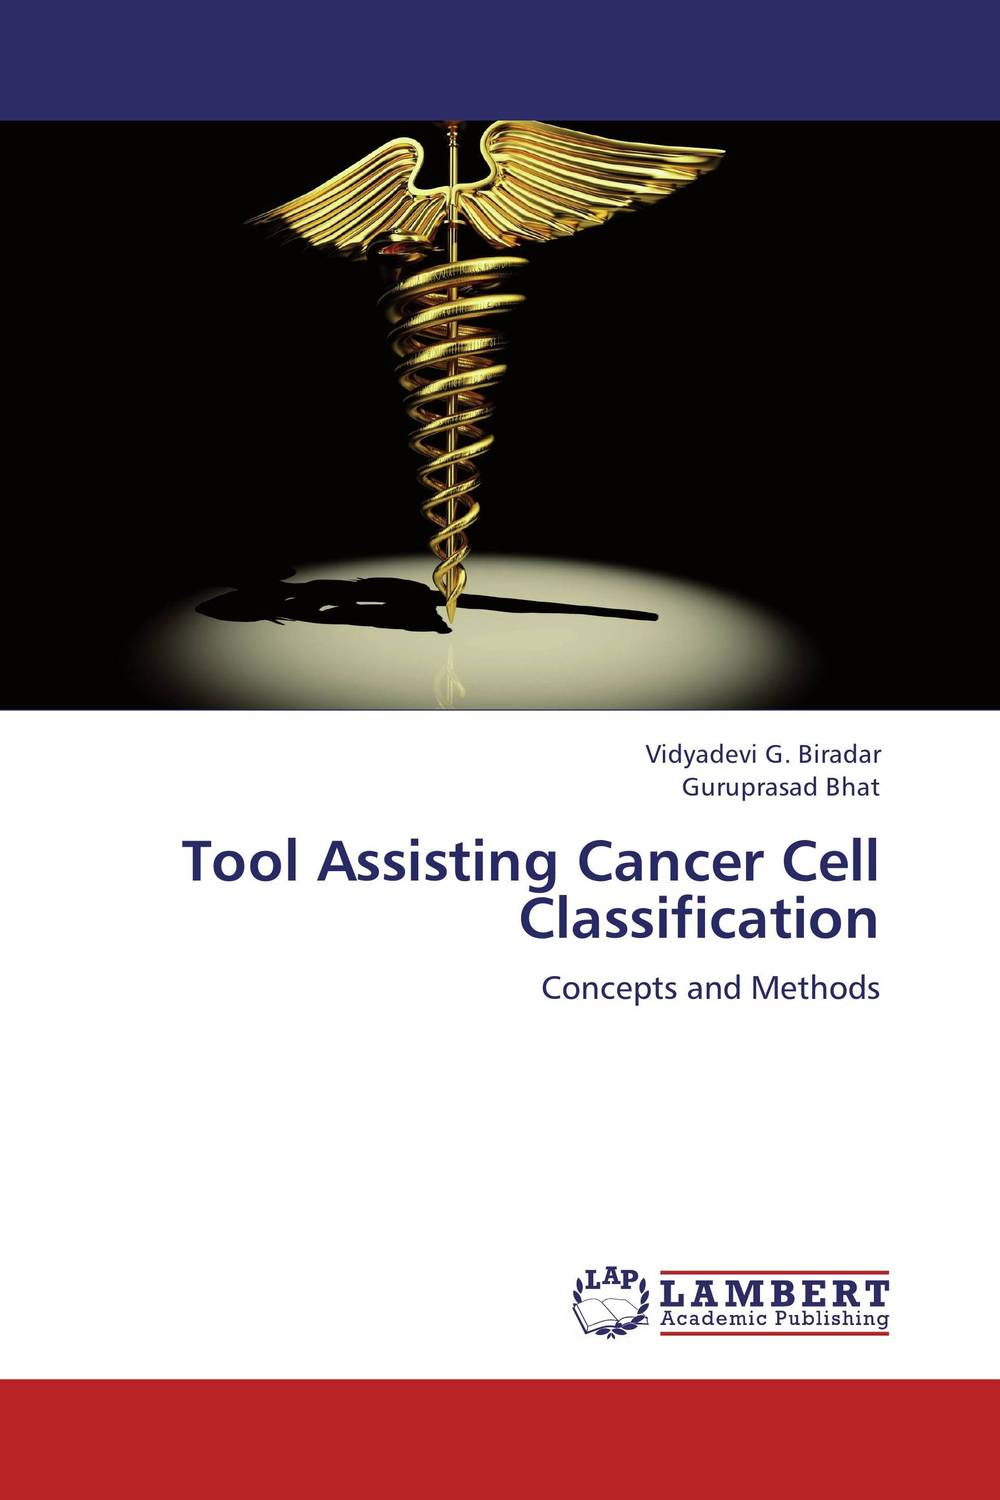 Tool Assisting Cancer Cell Classification feature extraction and classification methods of texture images